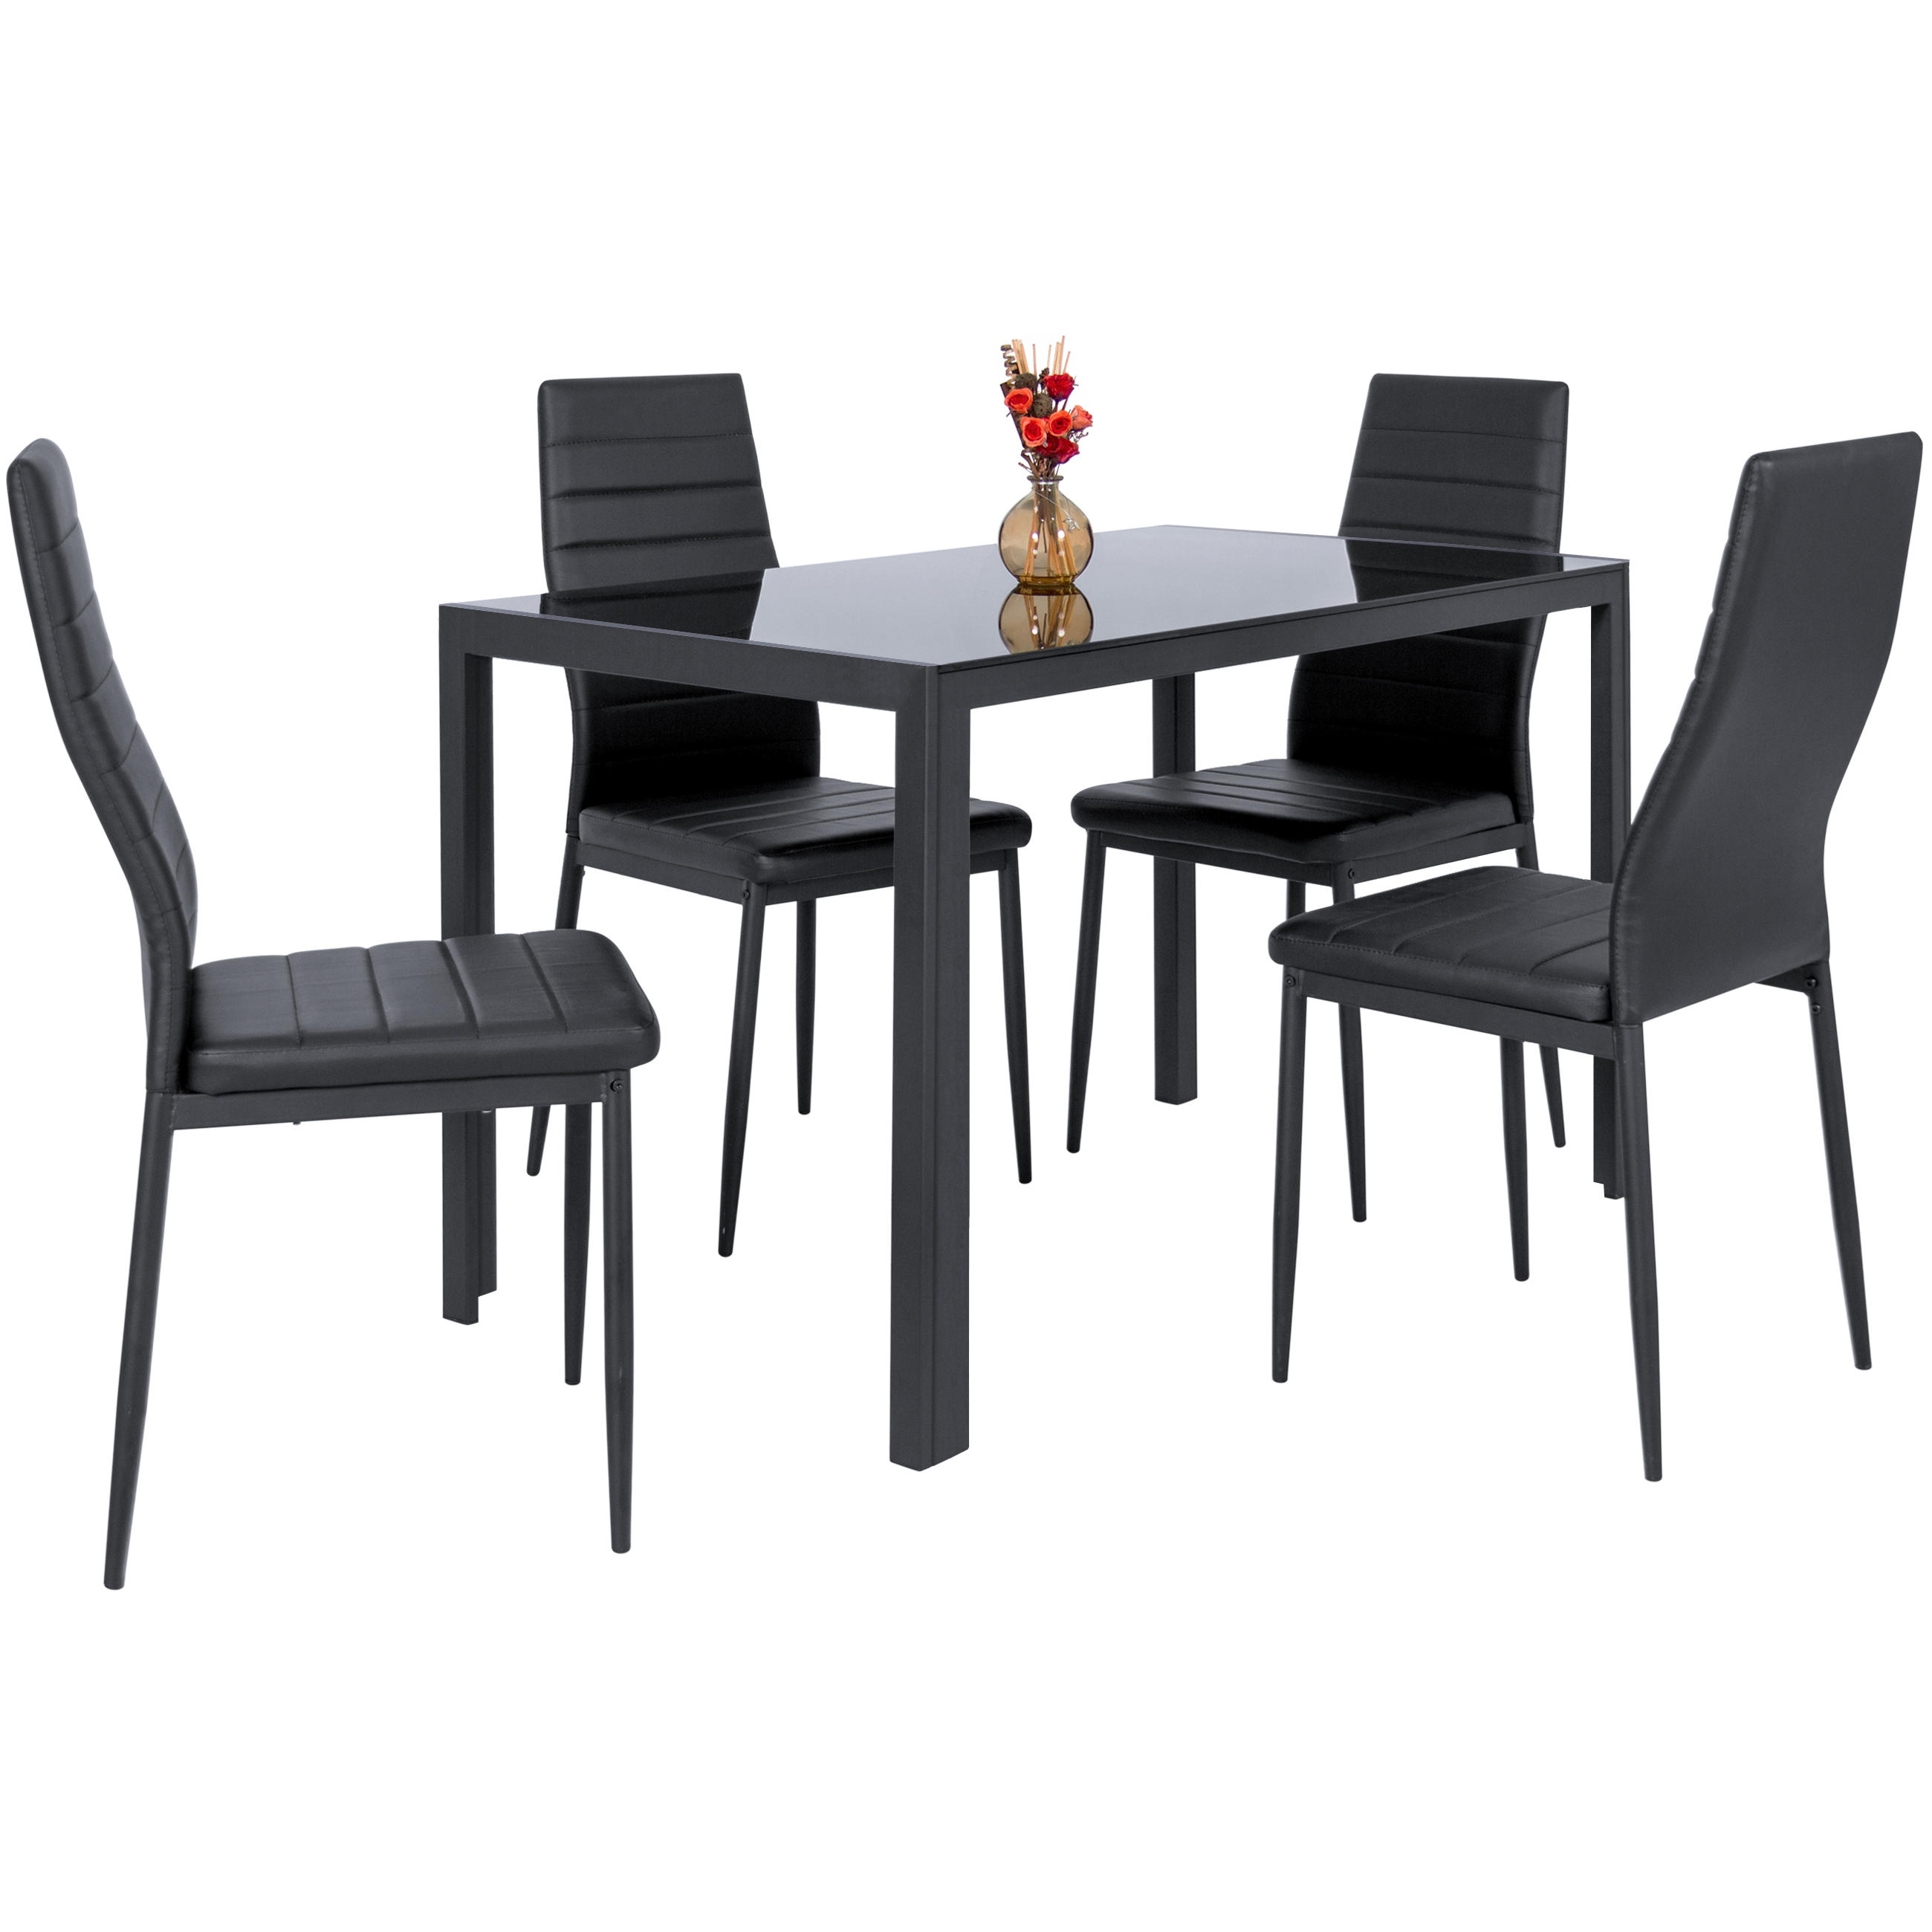 best choice products piece kitchen dining table set glass high end tabletop faux leather metal frame chairs for room dinette black powell kids furniture overstuffed sofa rustic